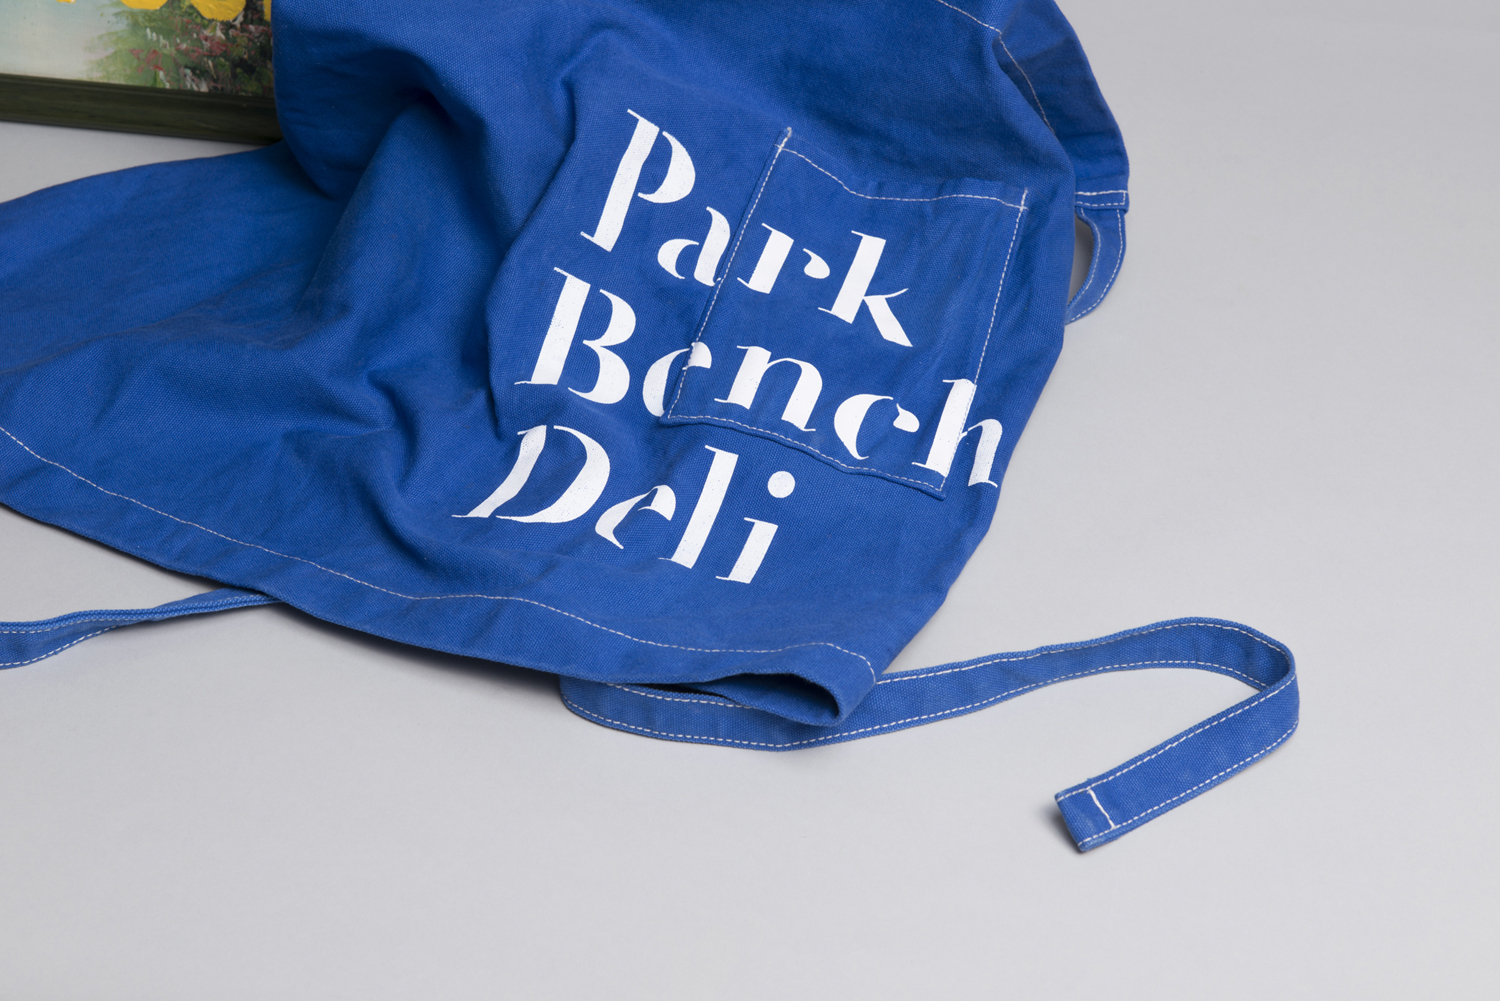 Blue apron singapore - Branded Apron By Foreign Policy For Singapore S Park Bench Deli